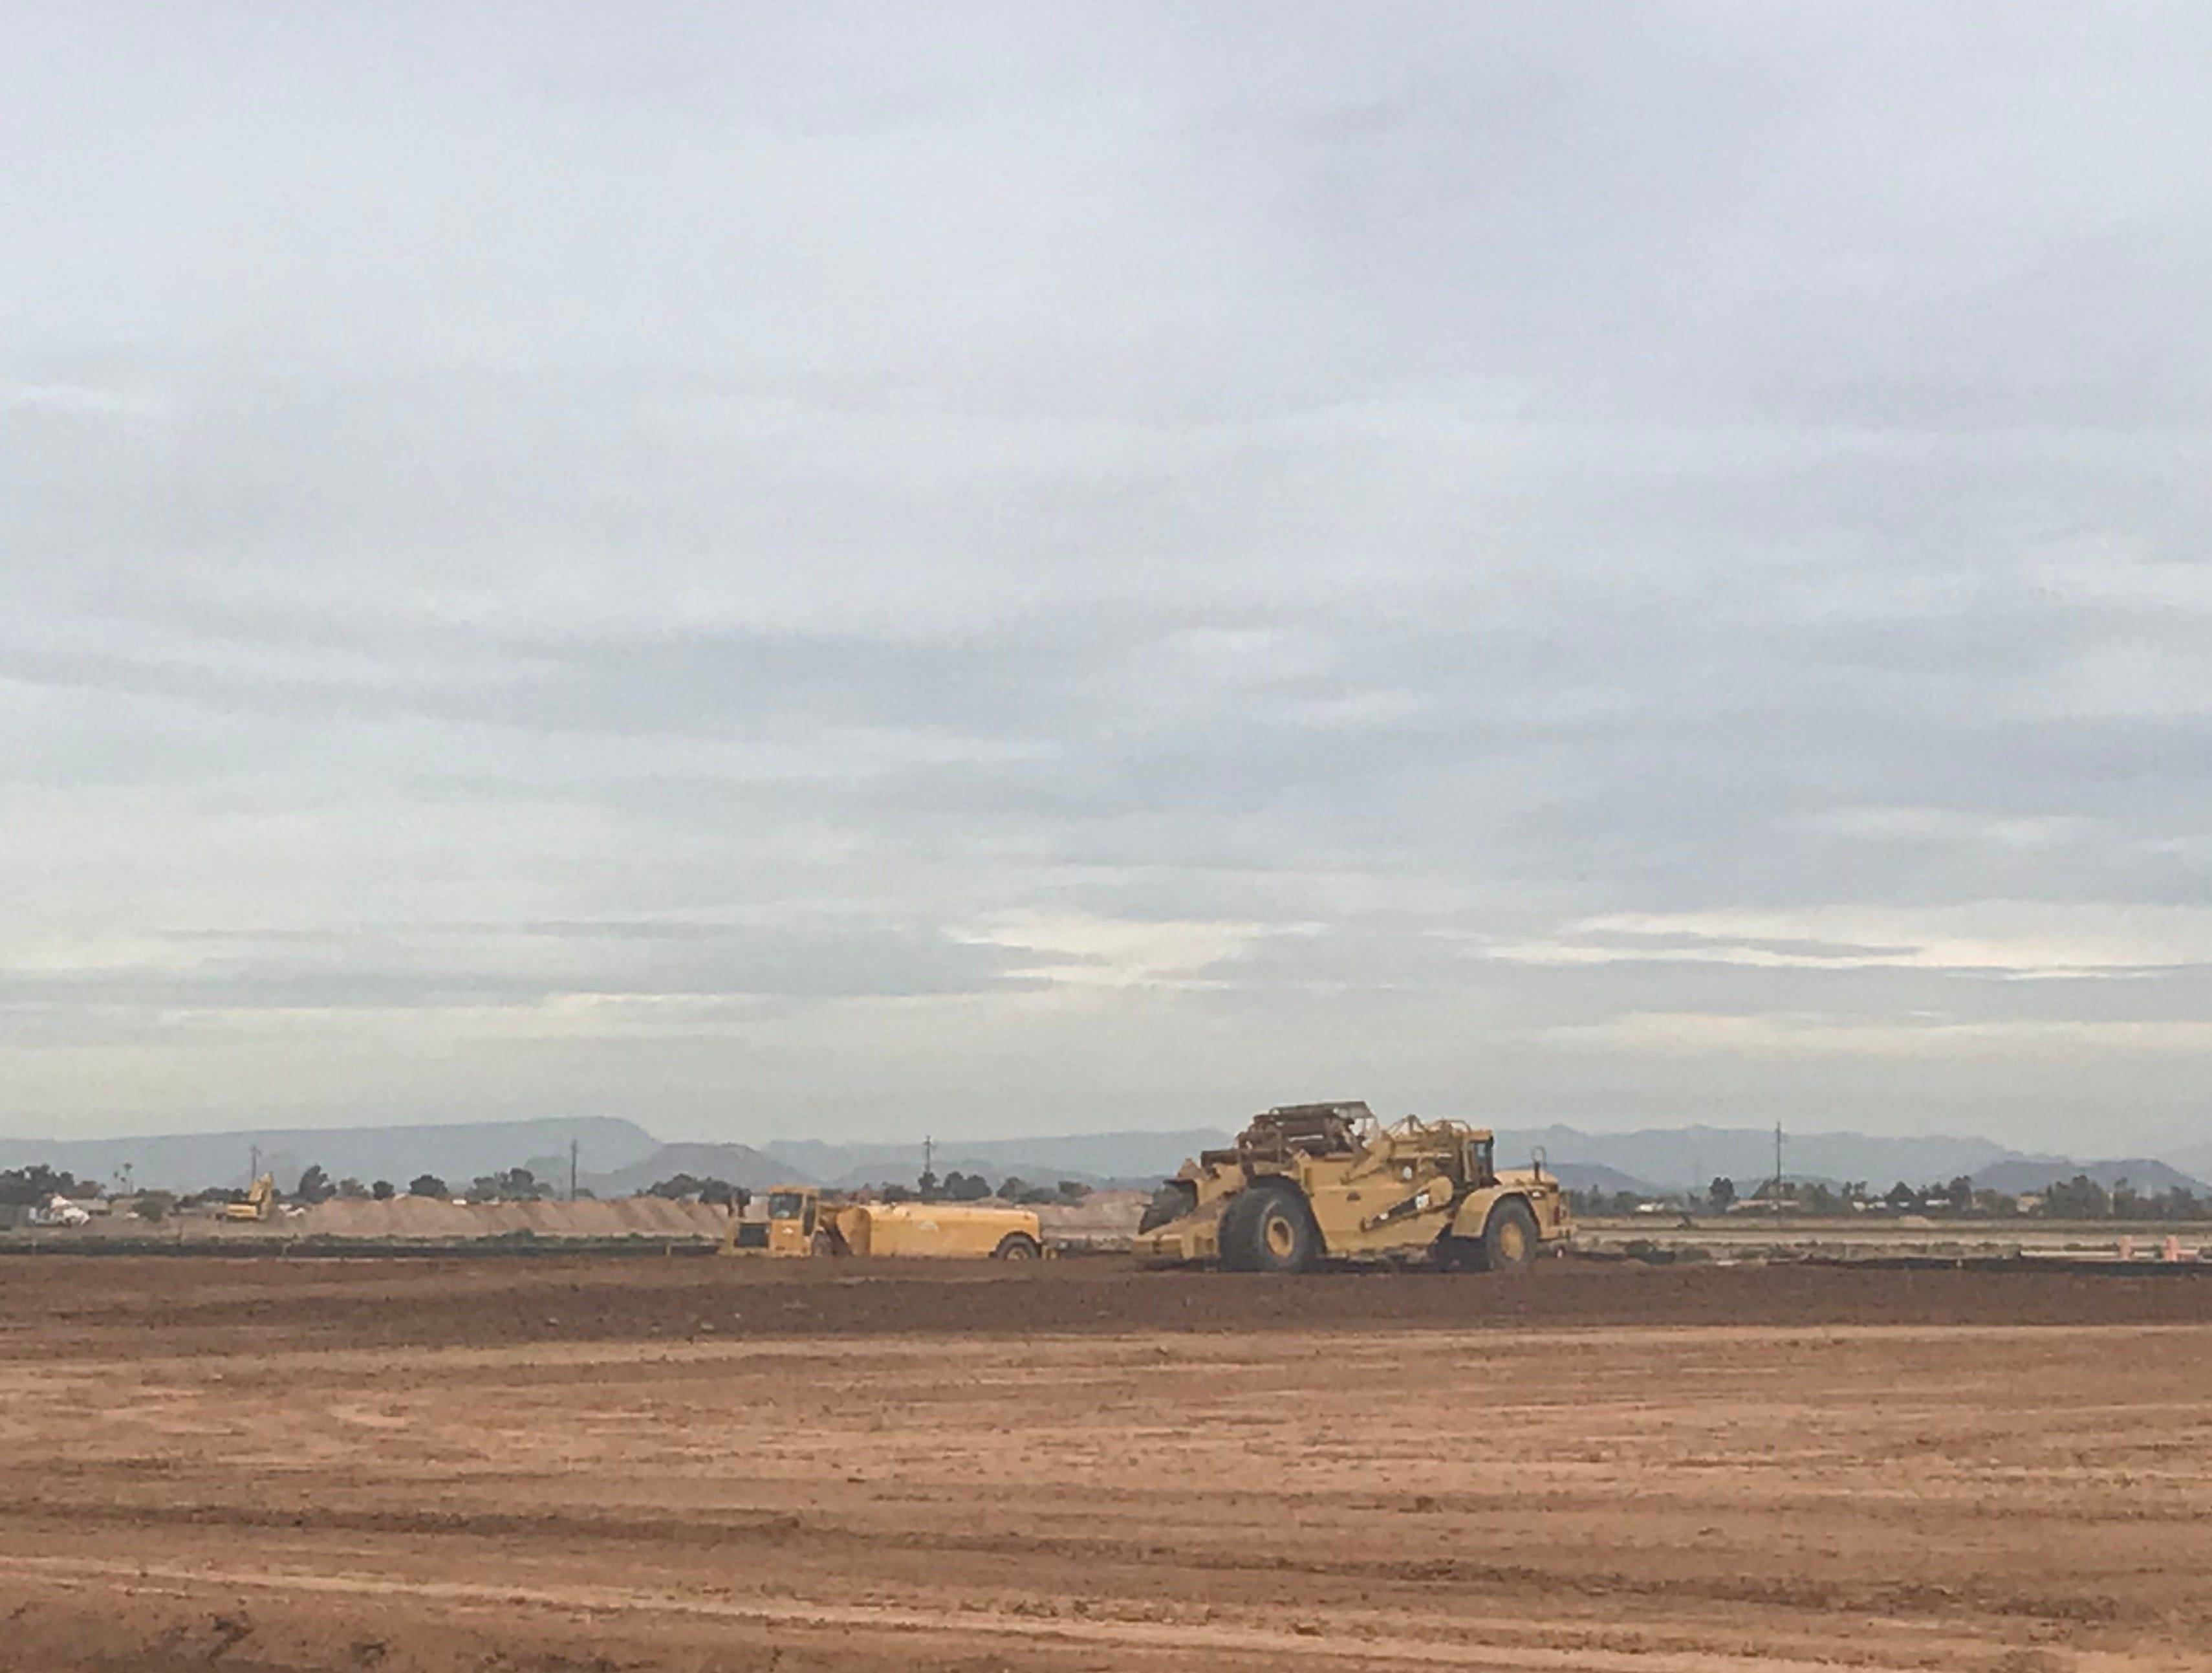 Site work is underway on the future Cives steel fabrication plant, going in just north of Olive Avenue between Litchfield and Dysart roads in El Mirage.